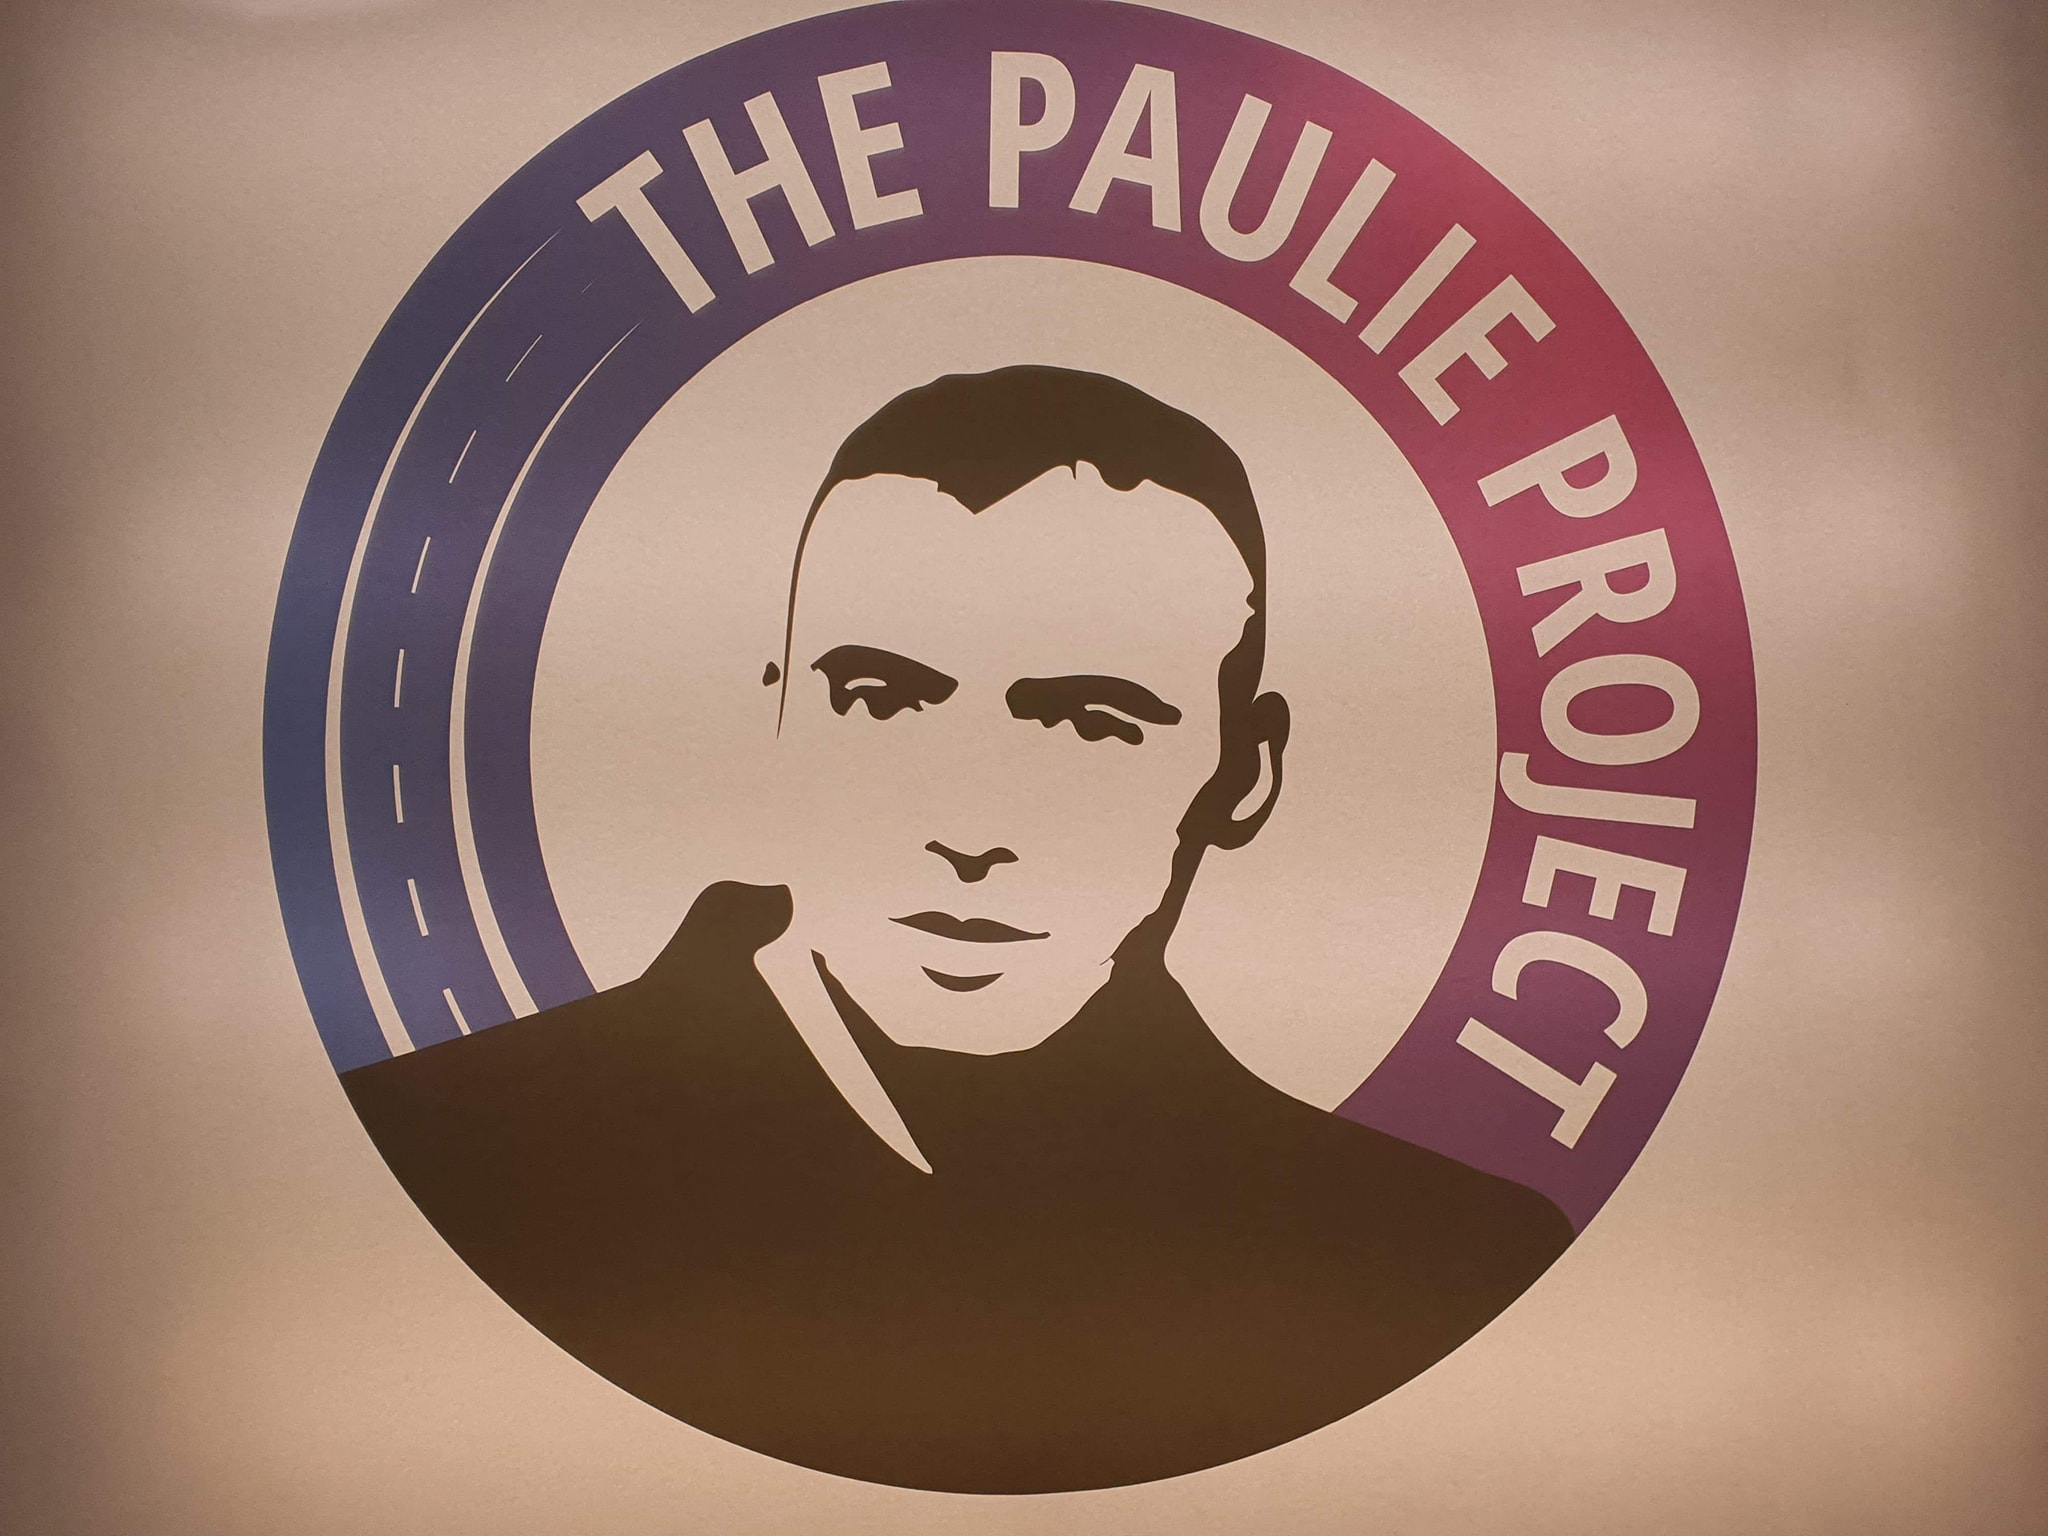 The Paulie Project – Short Educational Documentary